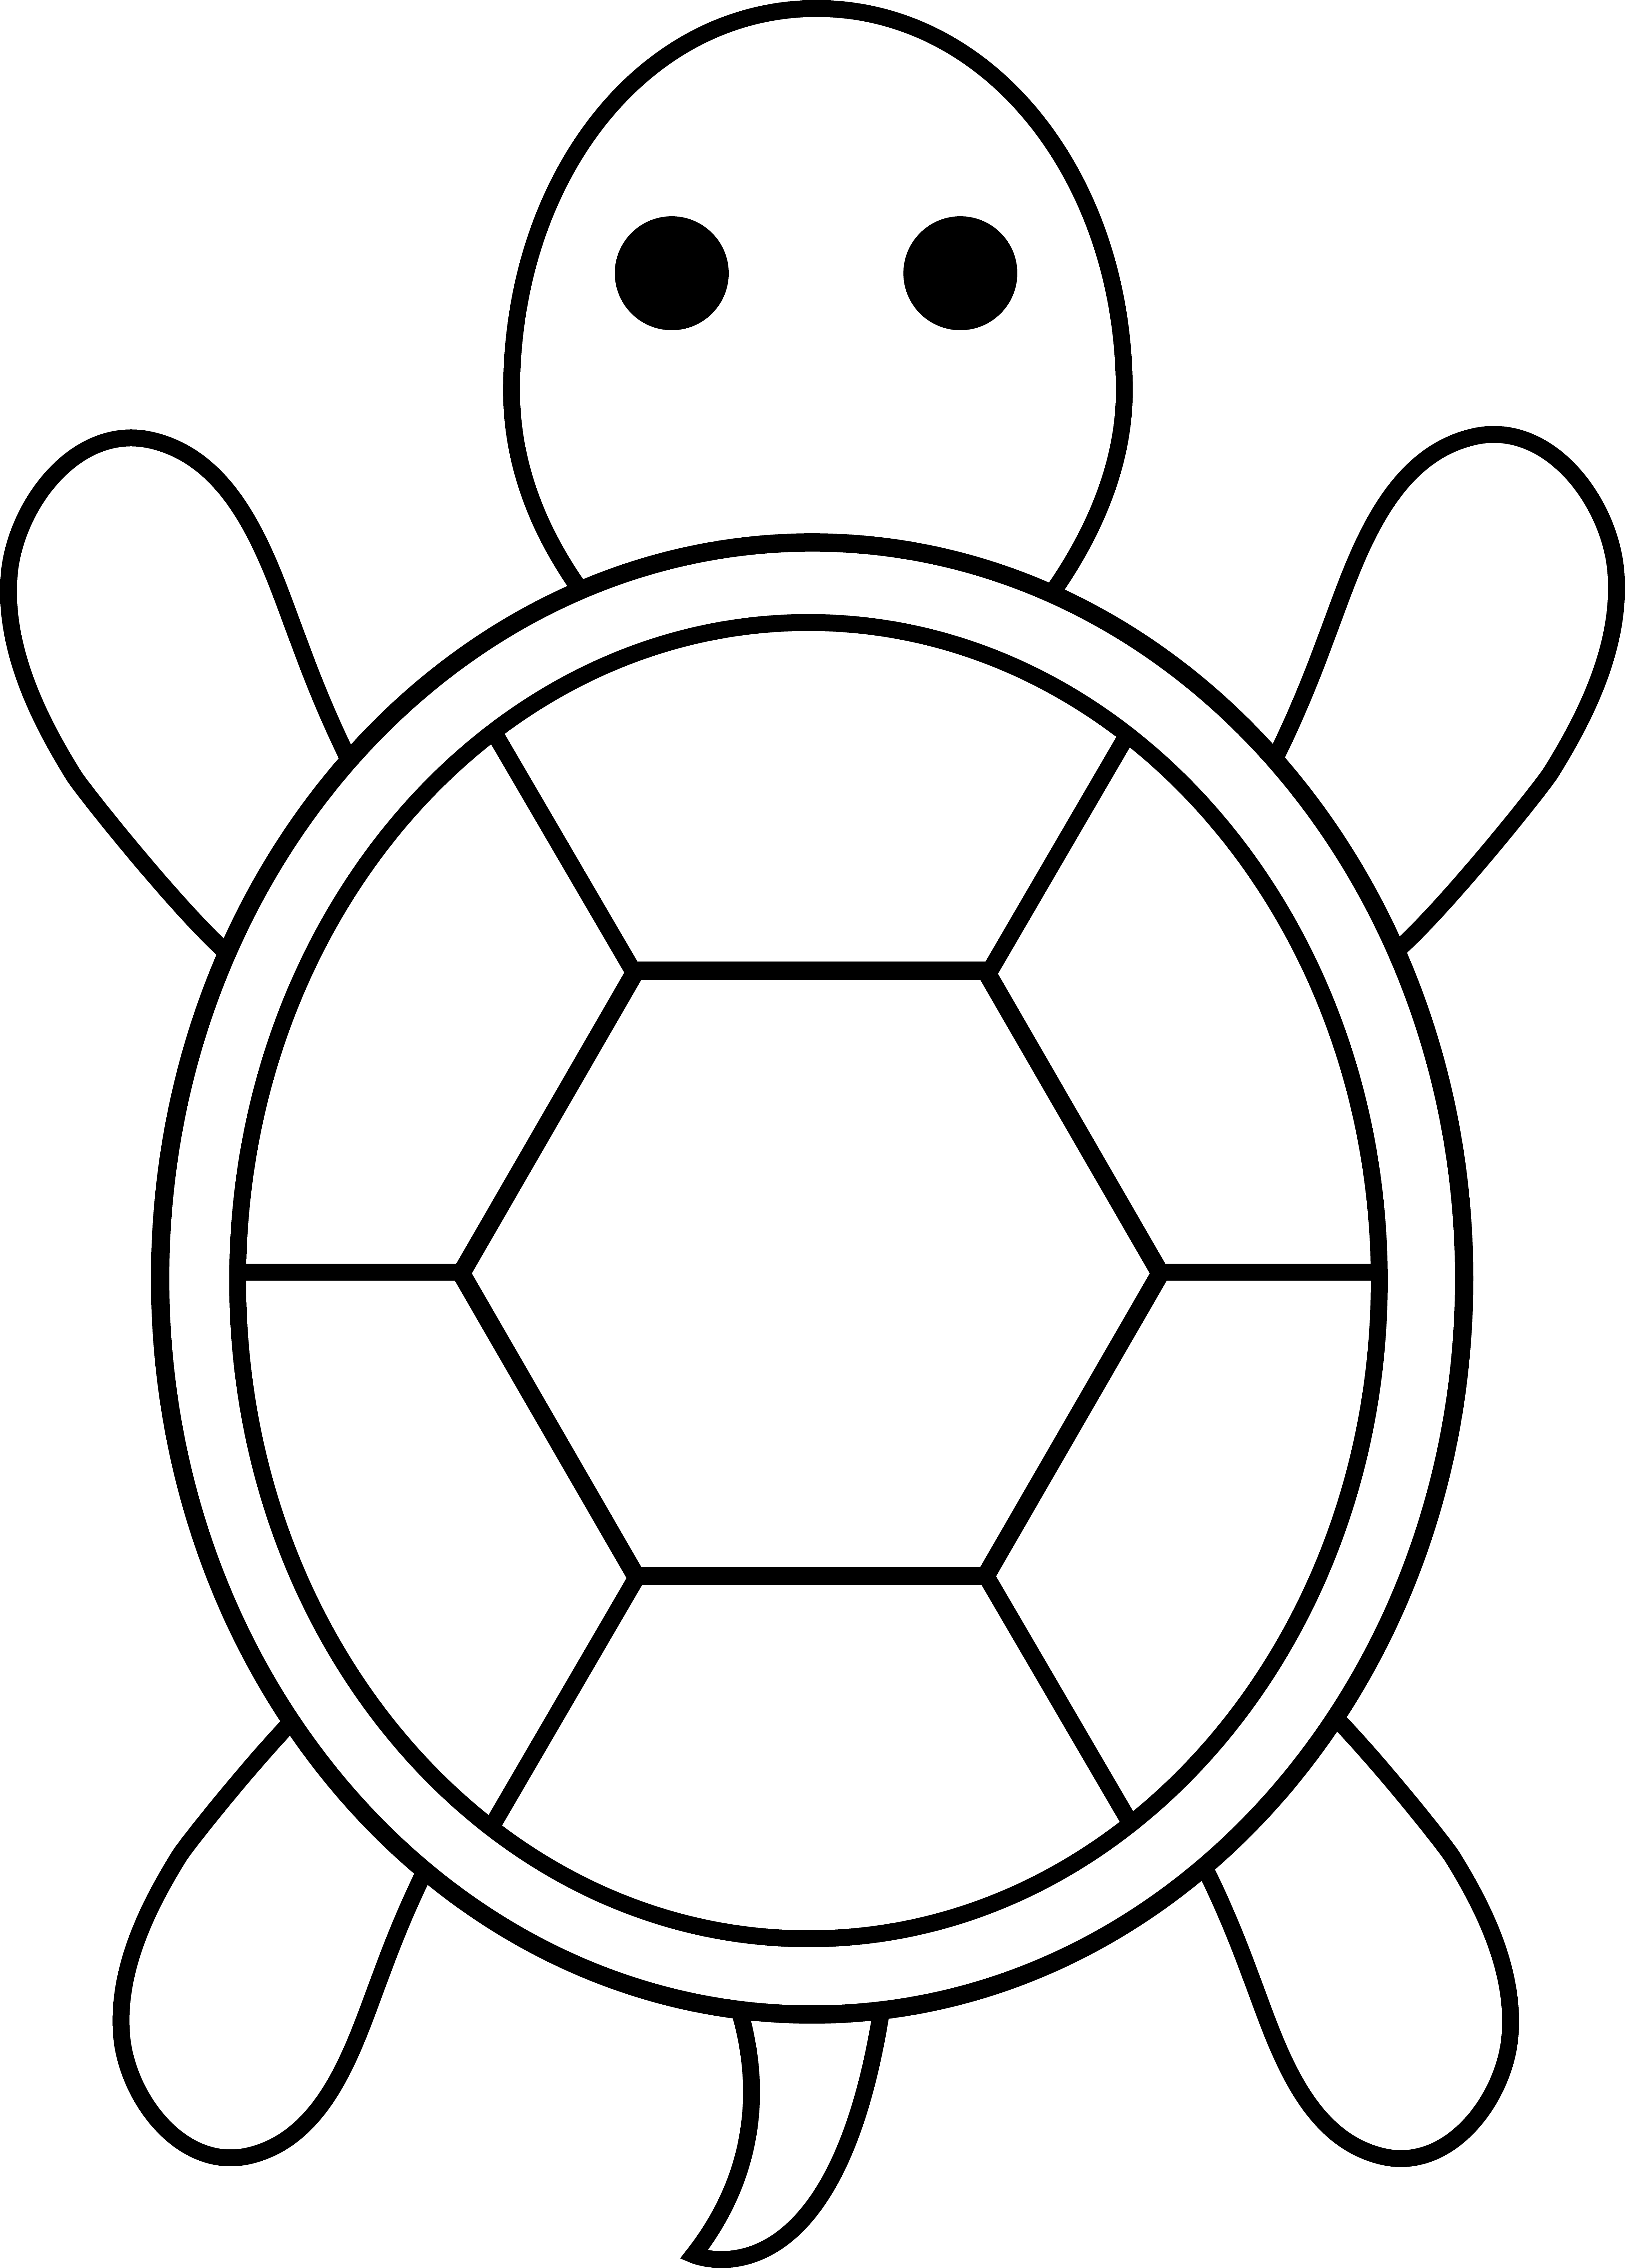 turtle pictures to color turtles to color for kids turtles kids coloring pages to color turtle pictures